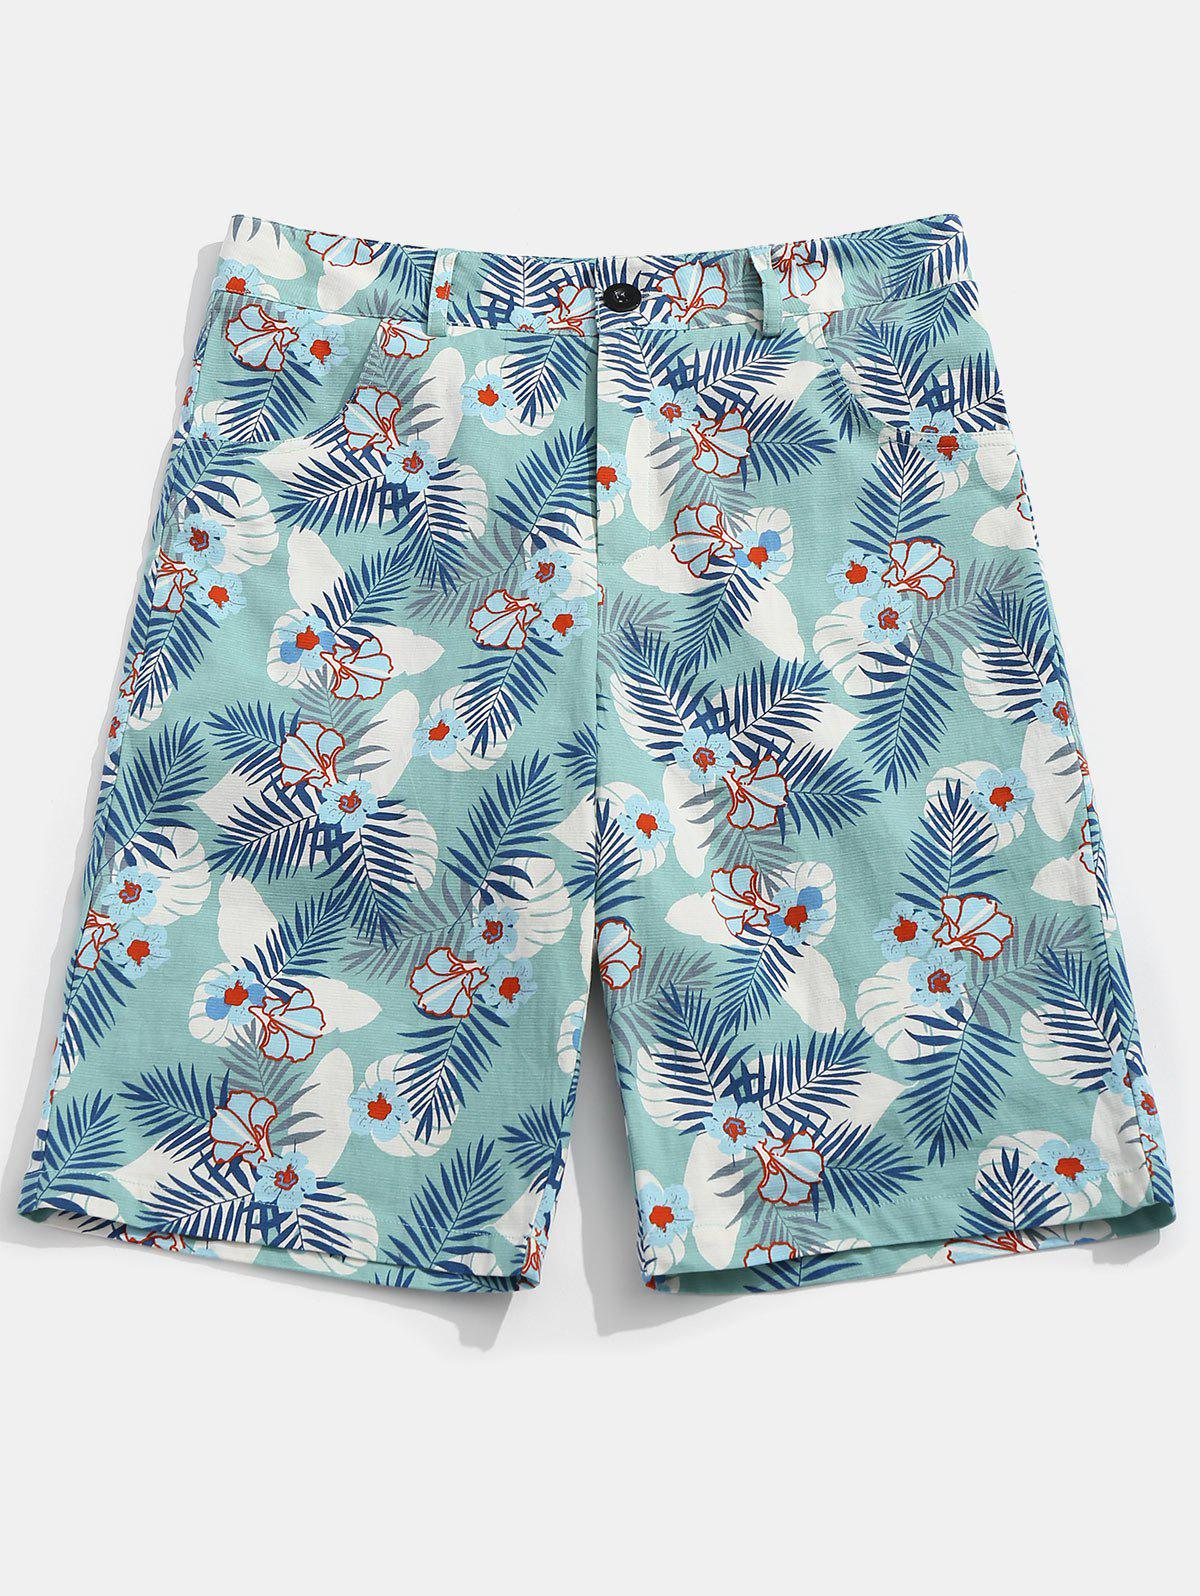 Zipper Fly Flower Leaves Print Shorts - COLORMIX XL